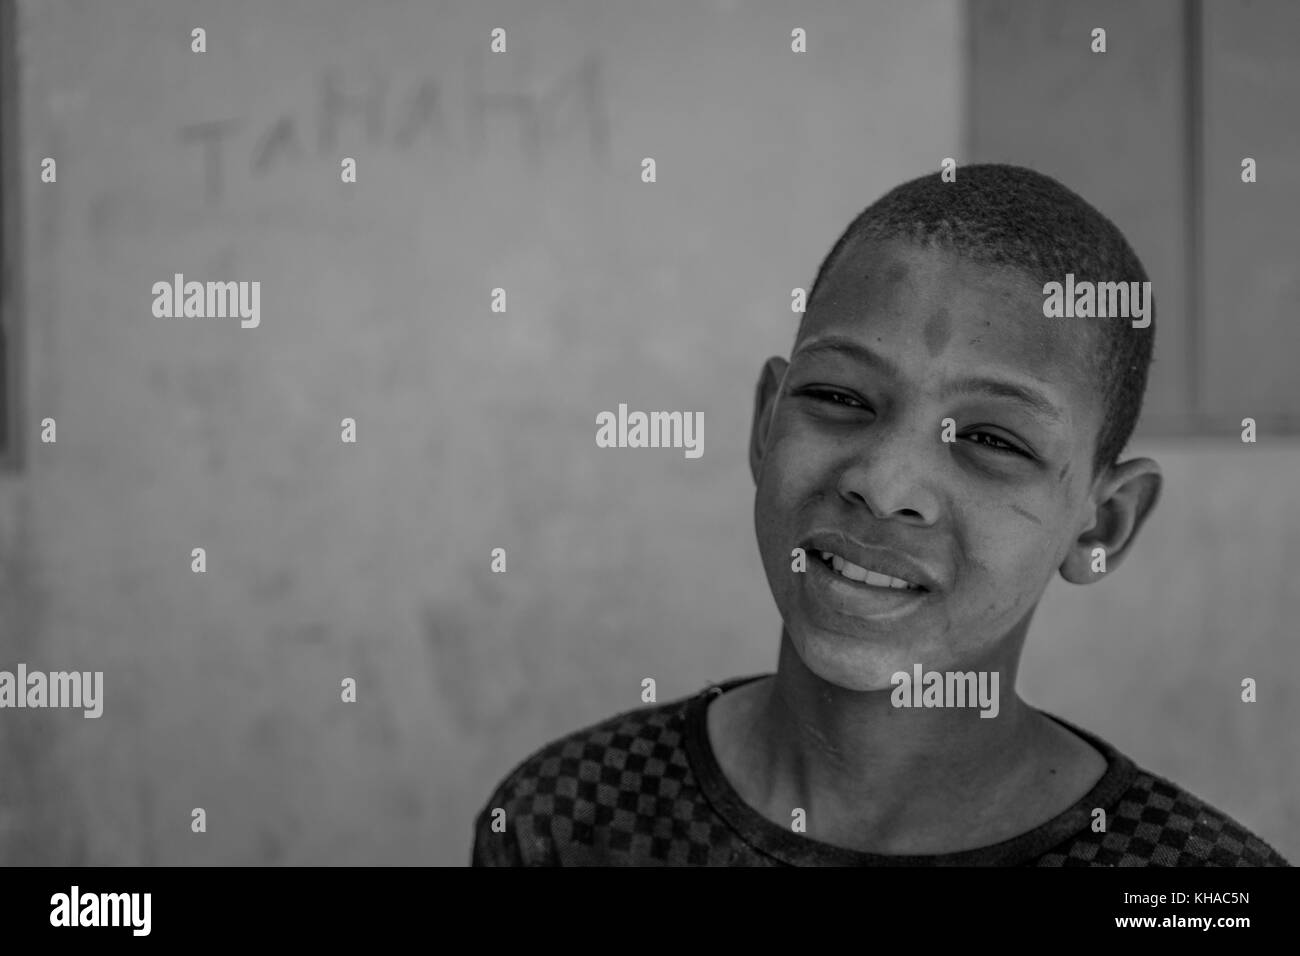 African Boy looking towards the camera. Taken in Mali. - Stock Image